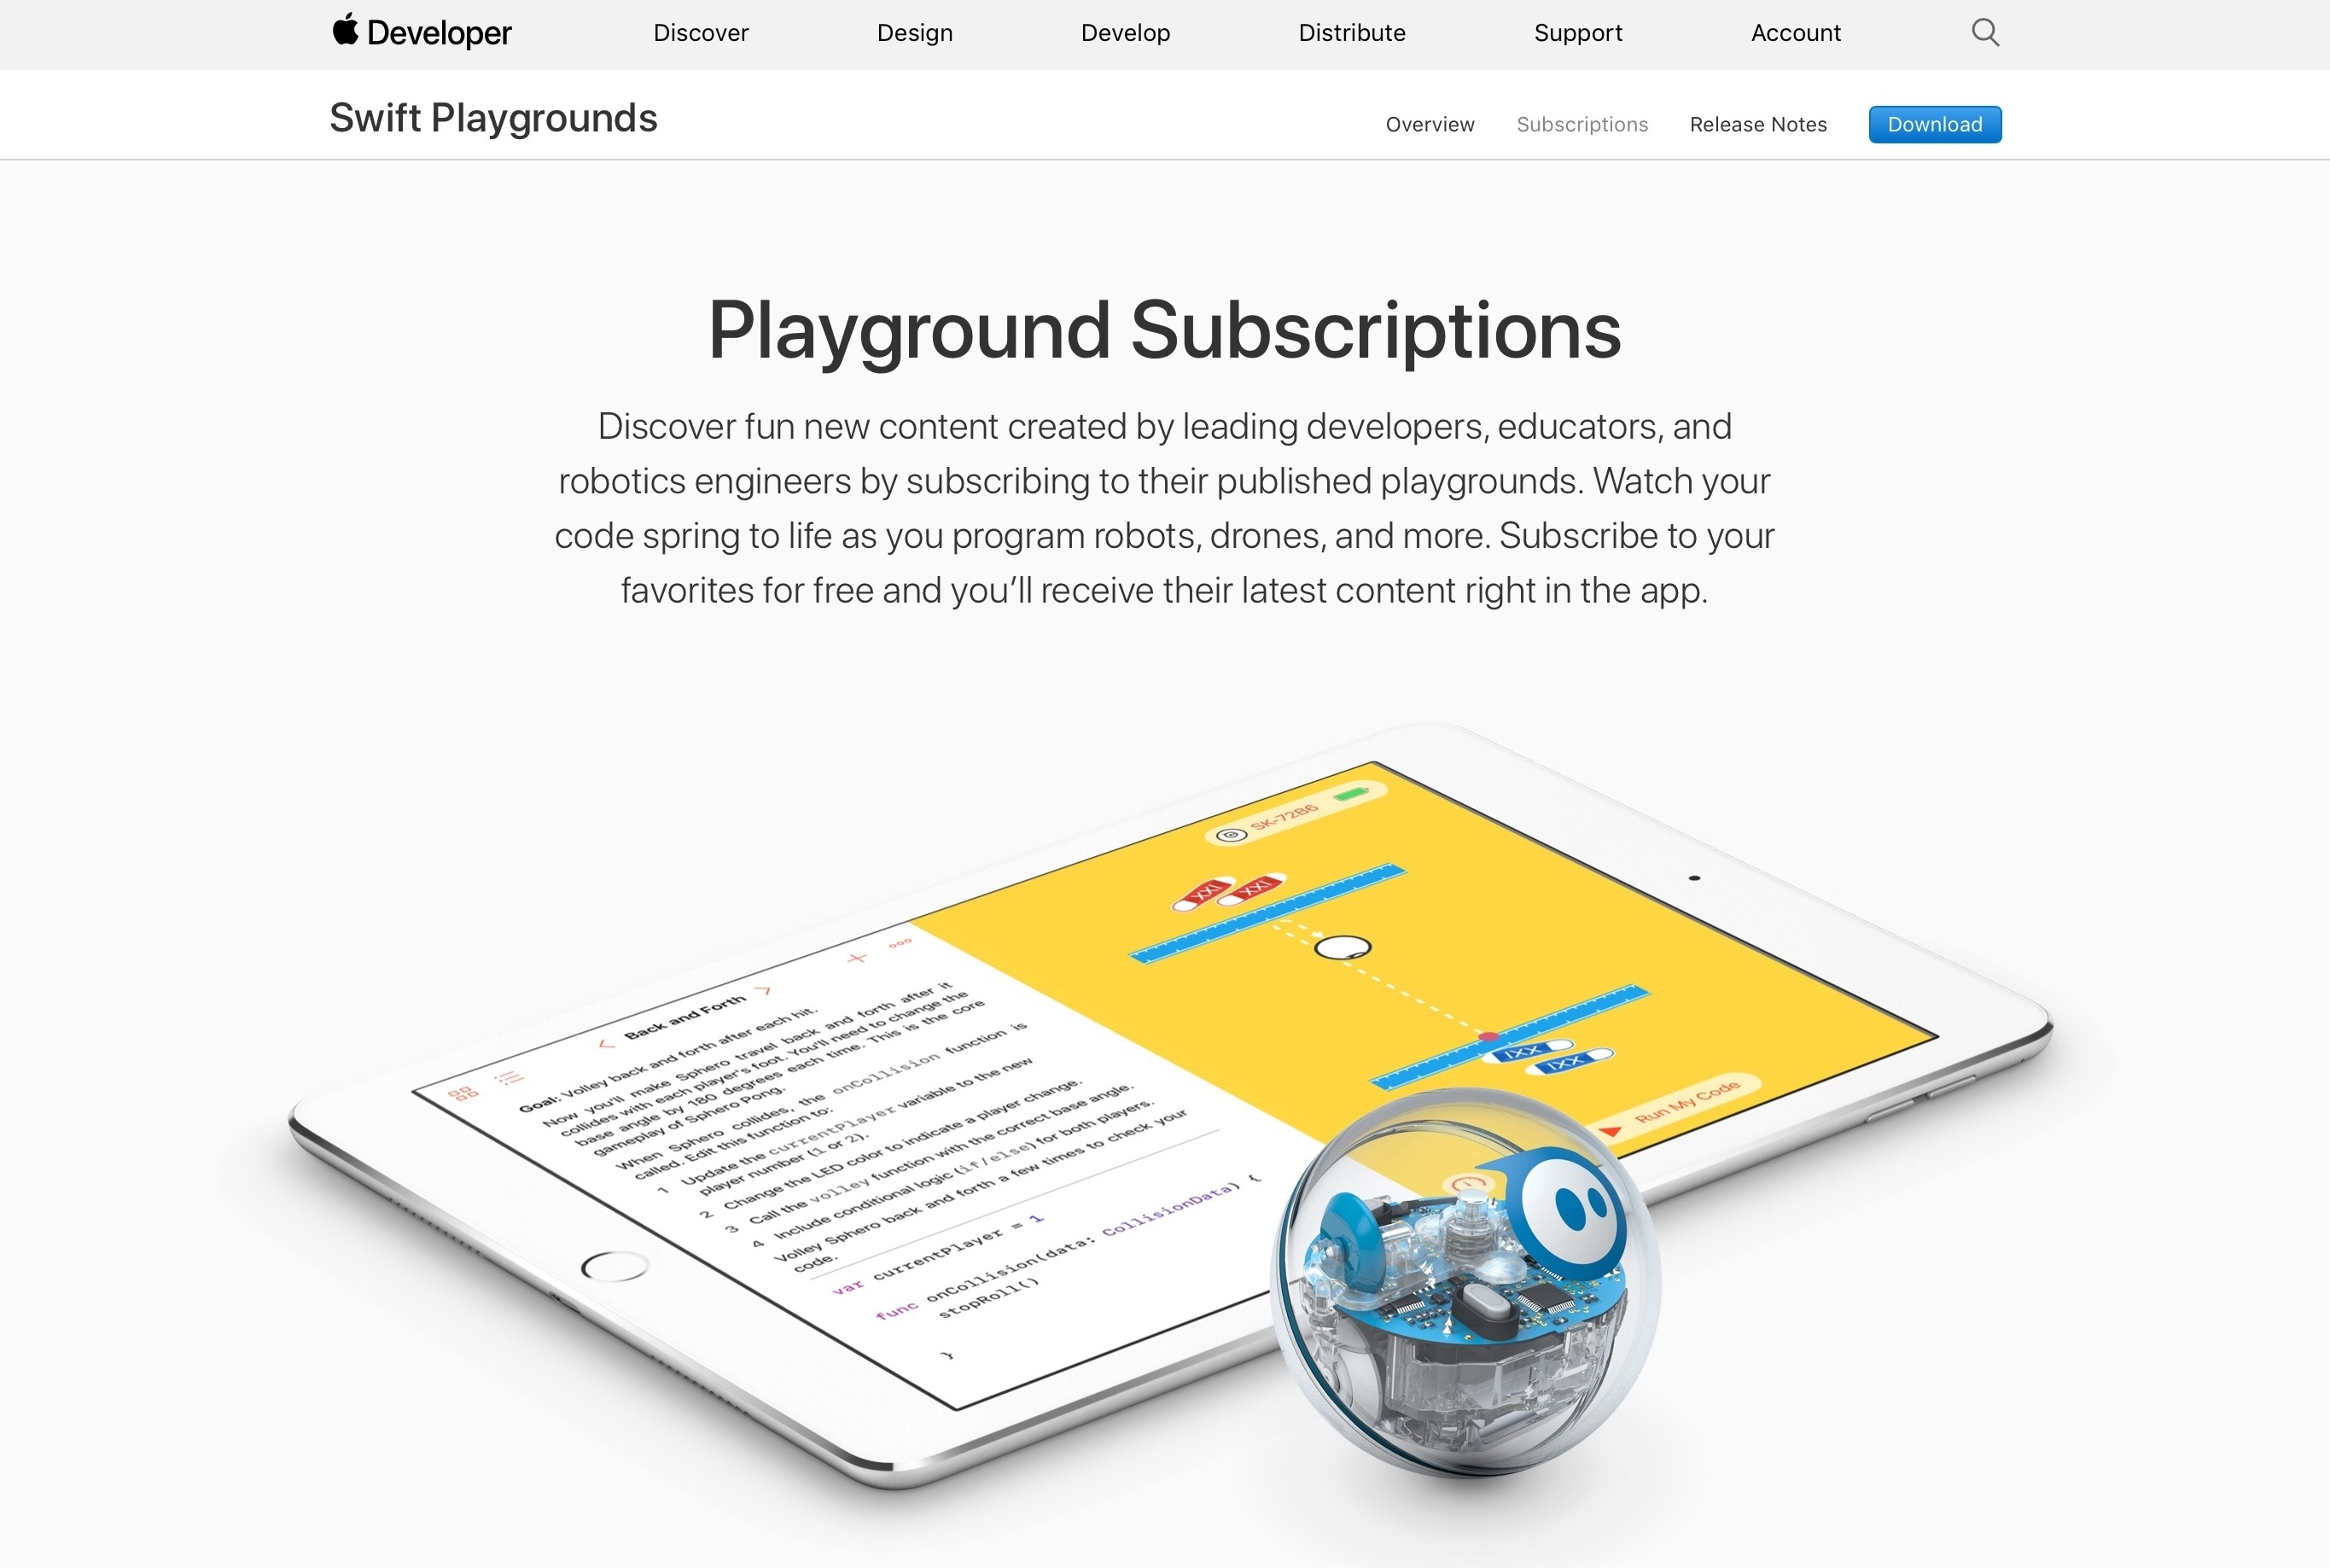 Apple Releases Swift Playgrounds 2.0 with Third-Party Subscriptions